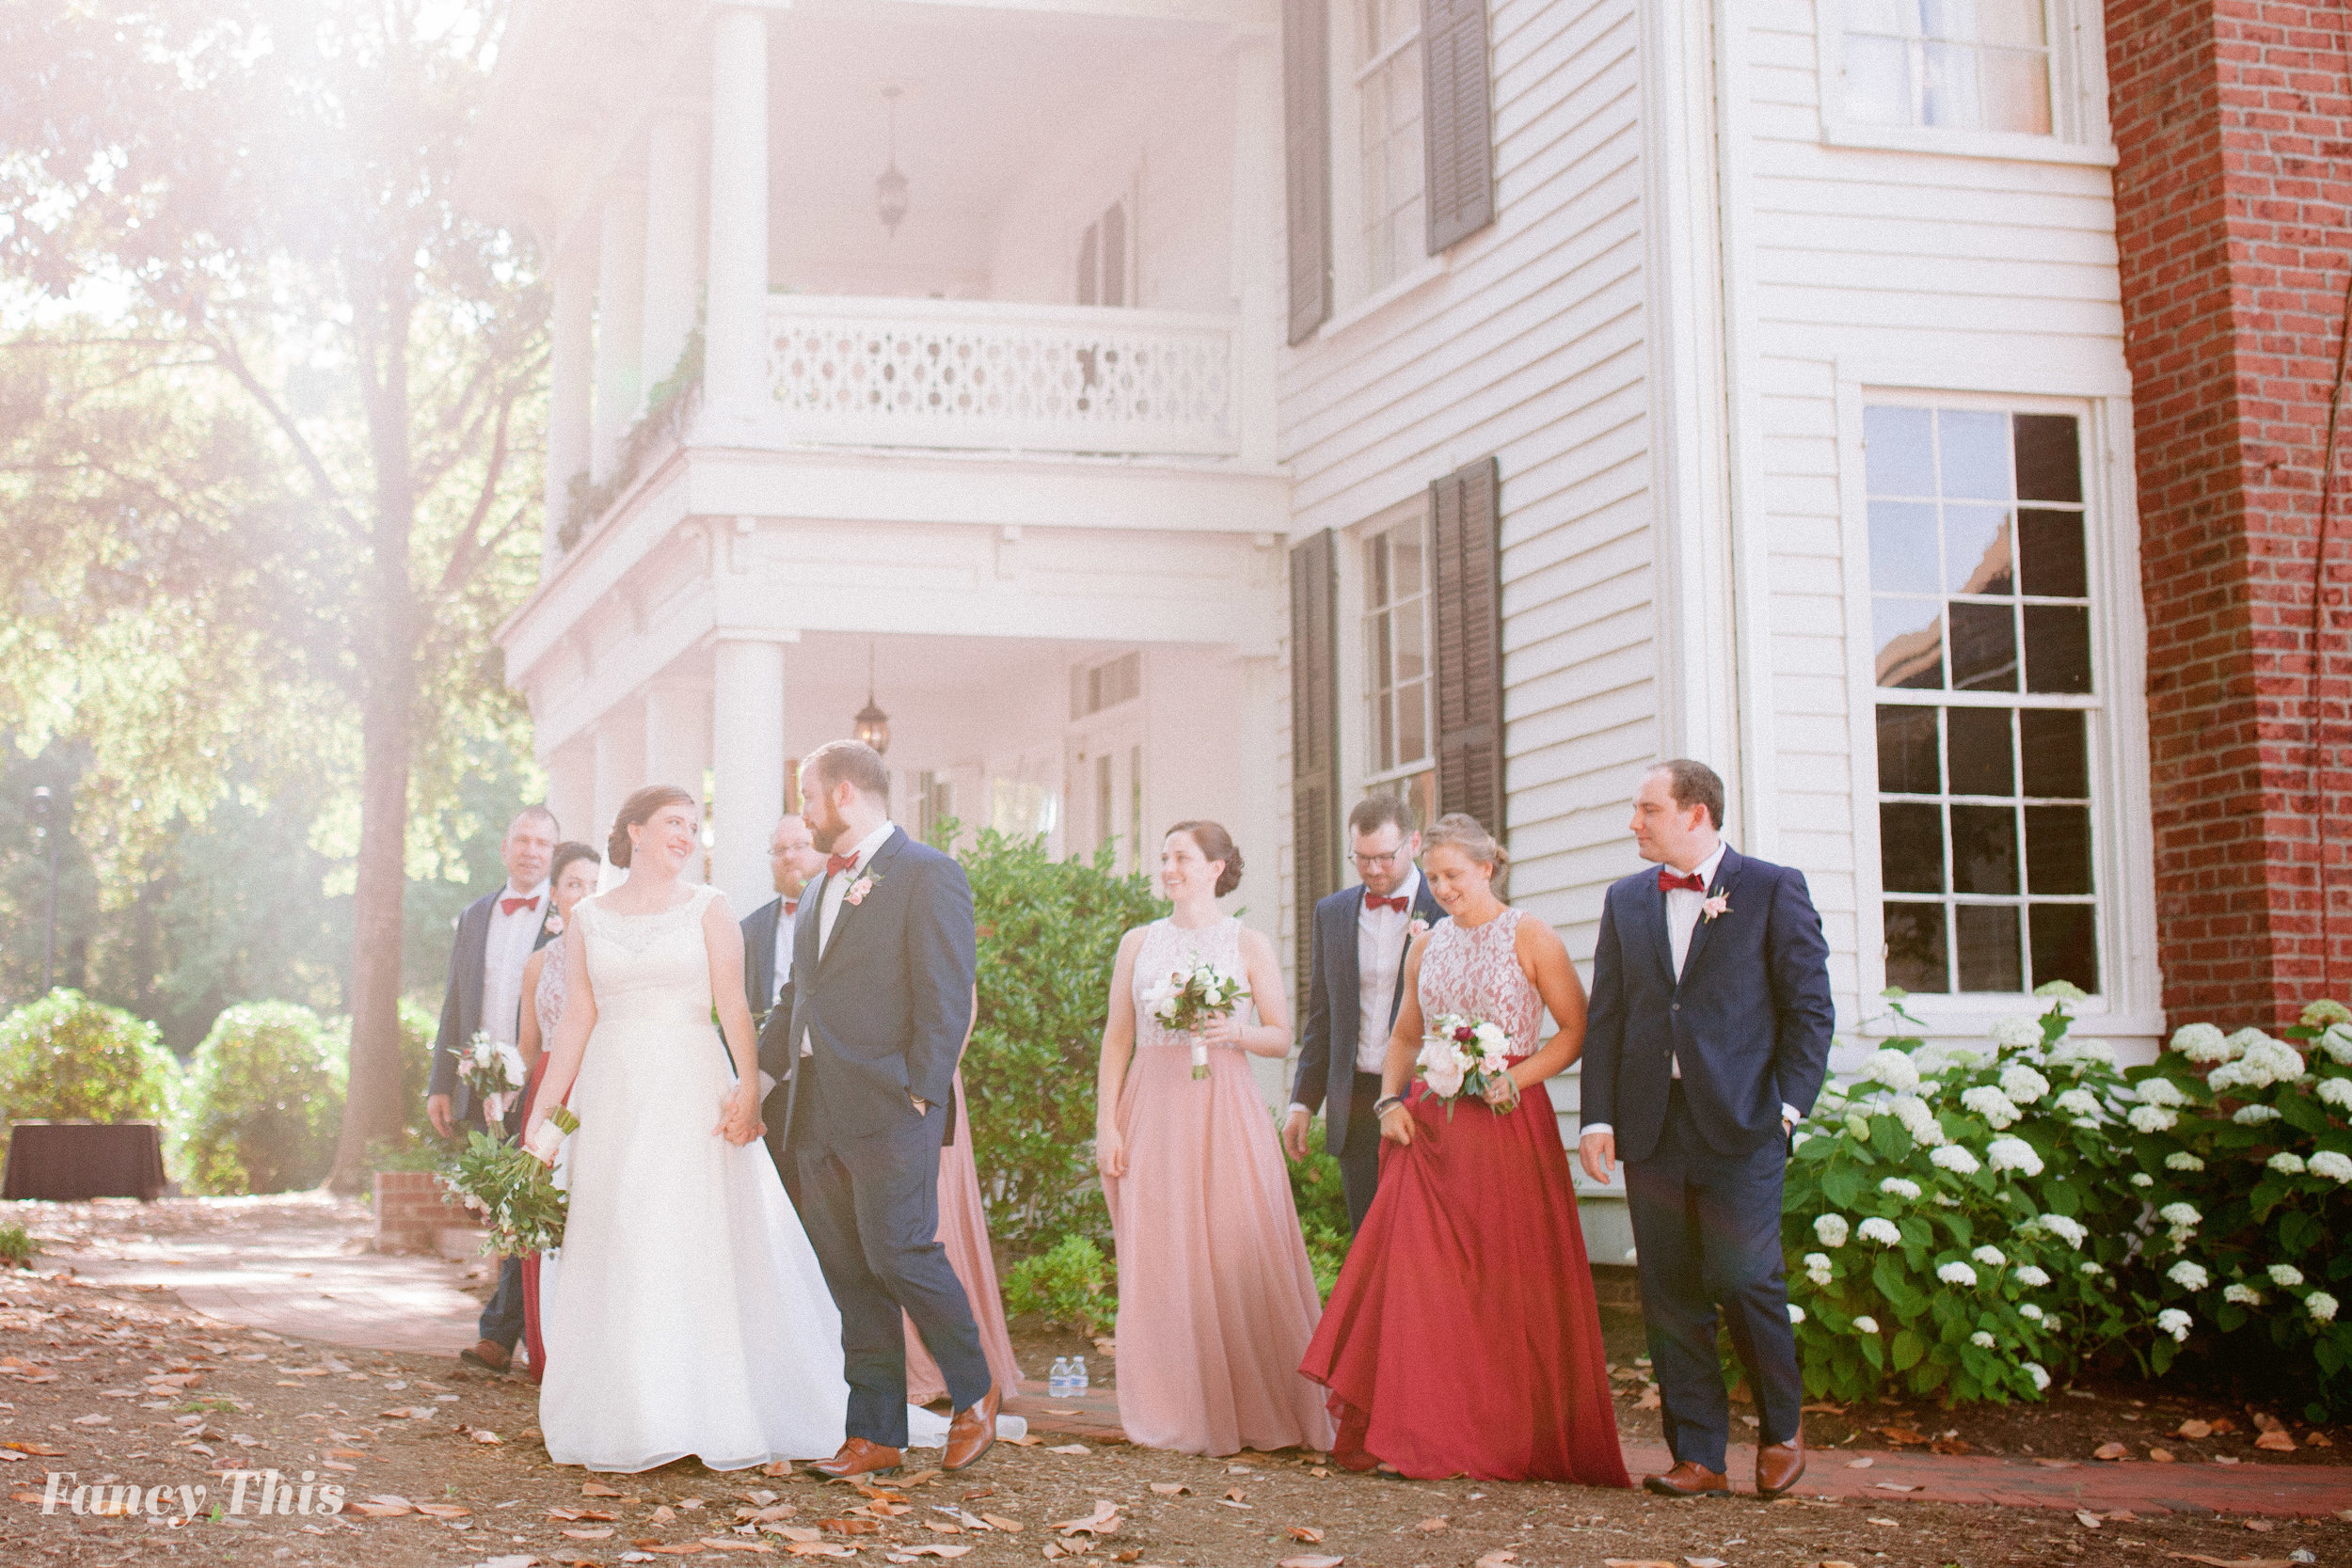 themimshousewedding_summerweddinginhollysprings_fancythis-376.jpg